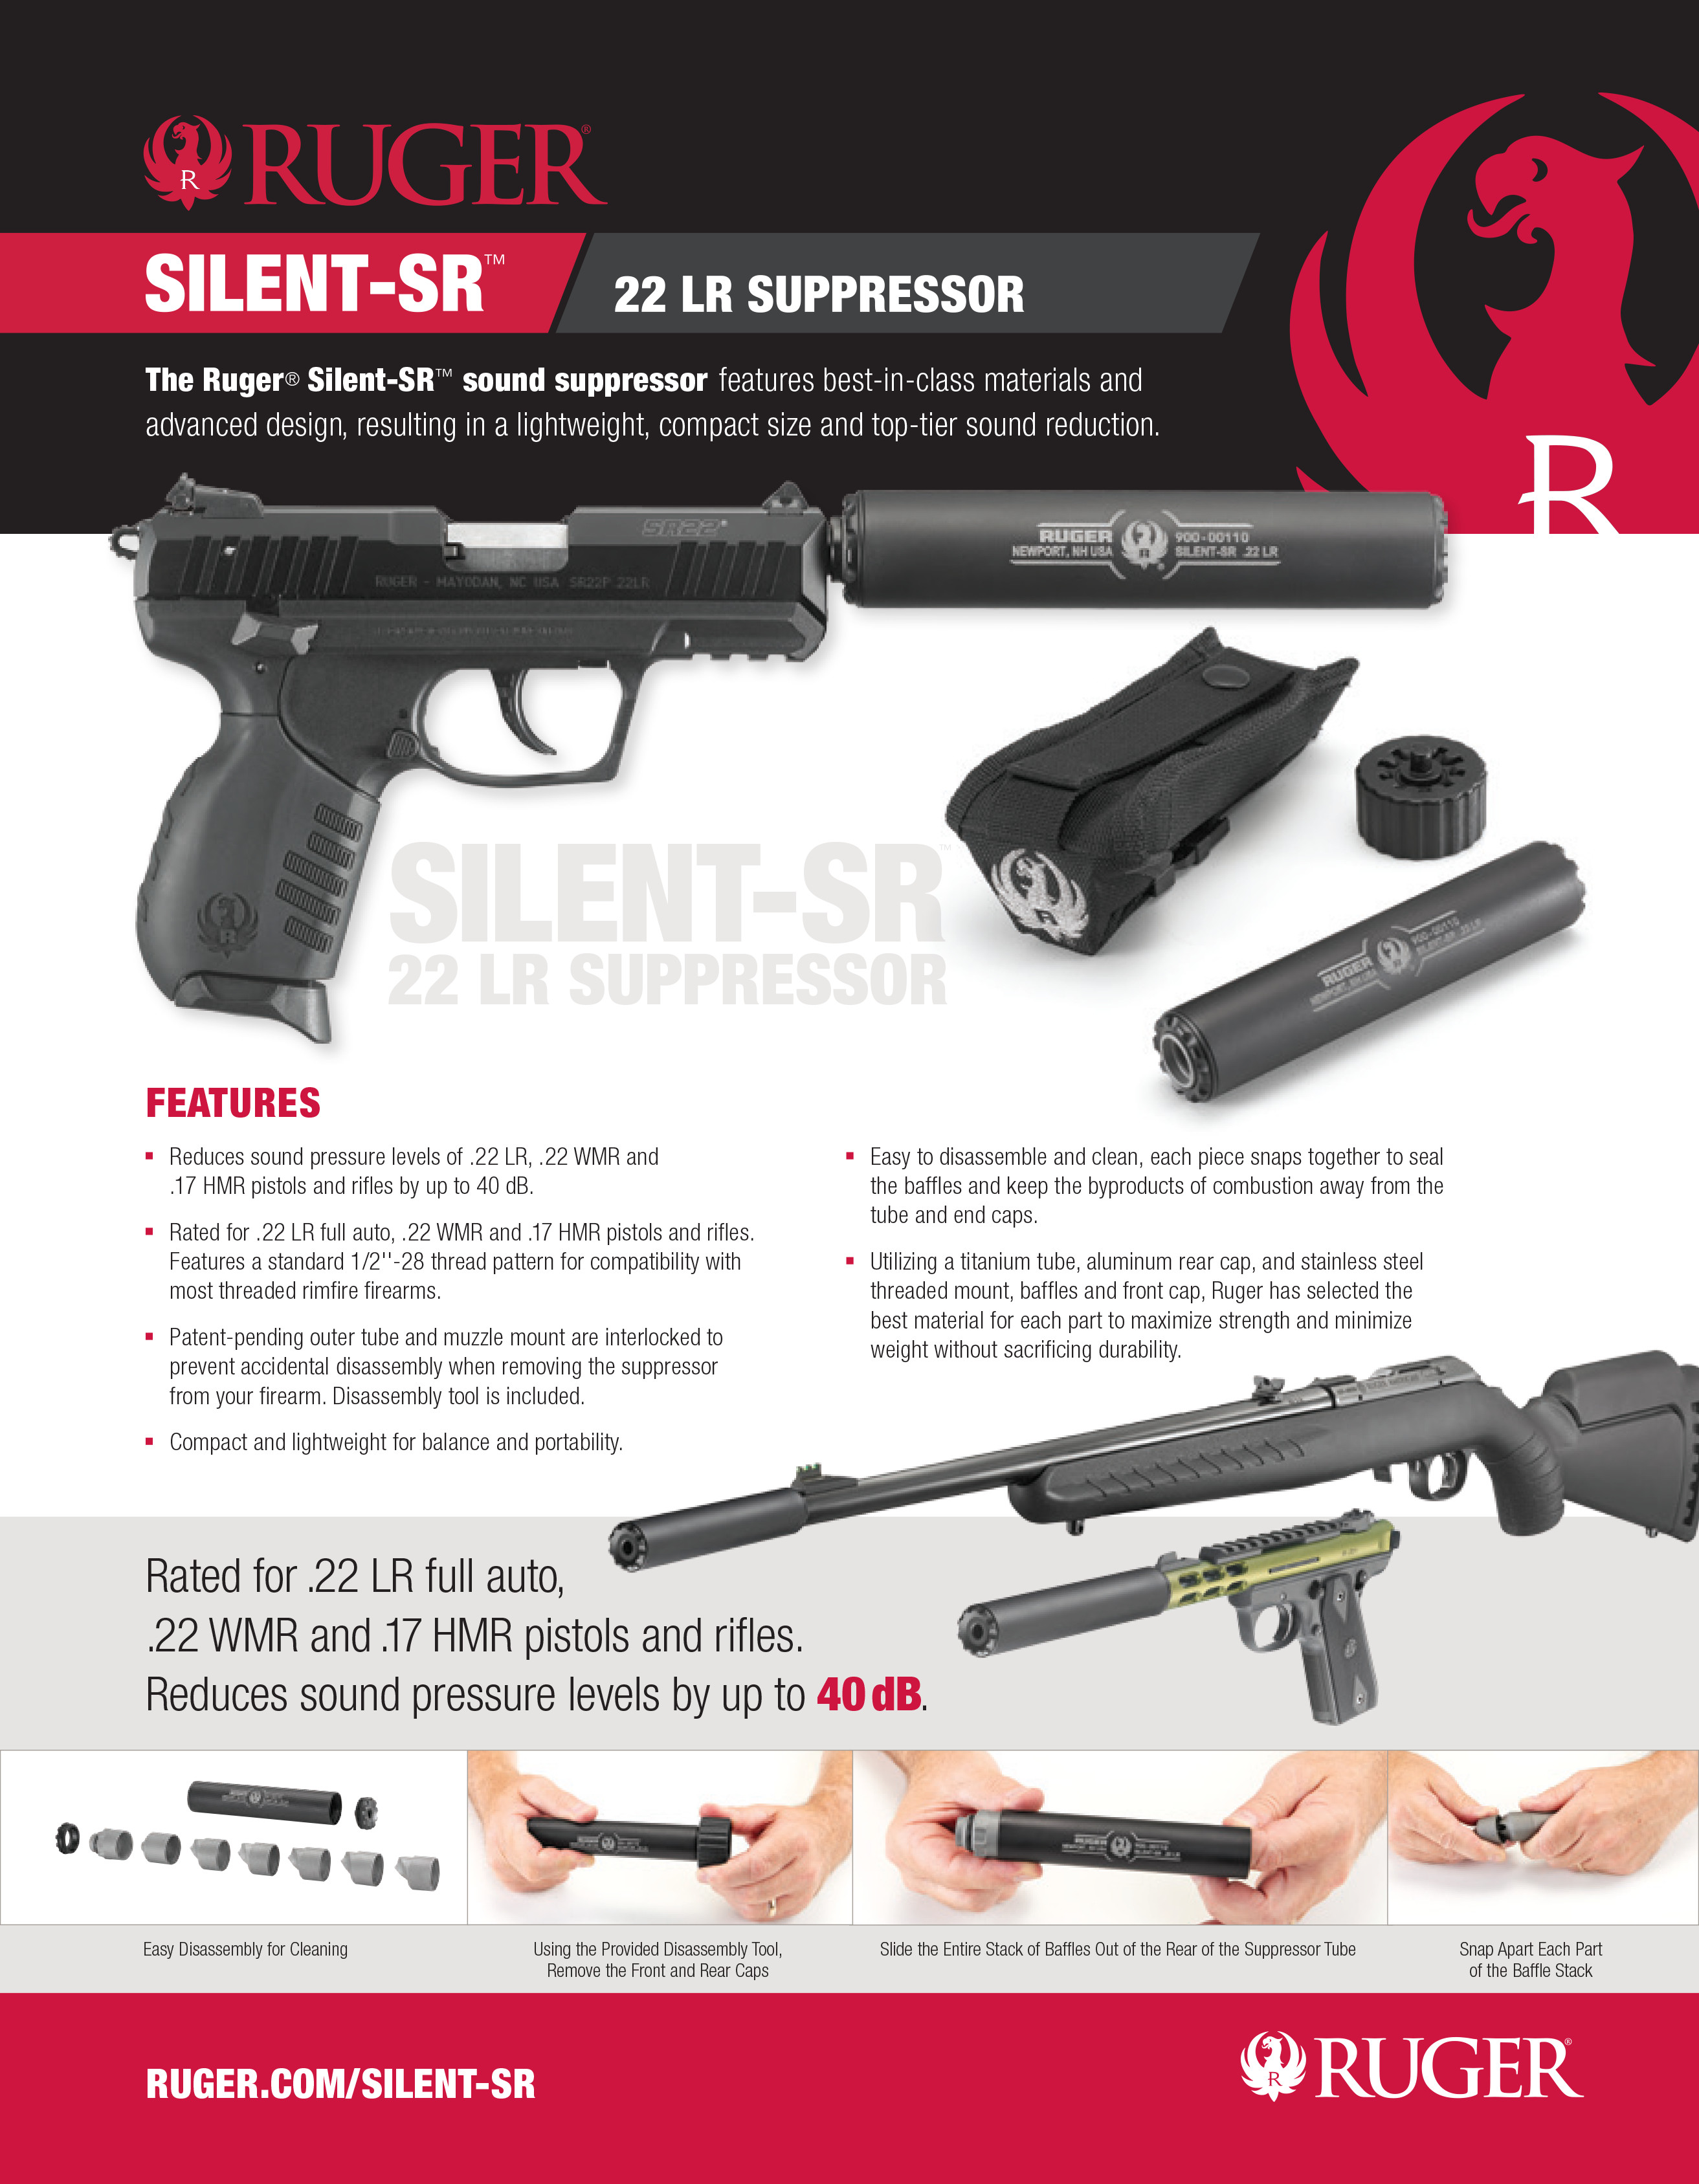 Ruger Announces New Silent Sr 22 Caliber Suppressor